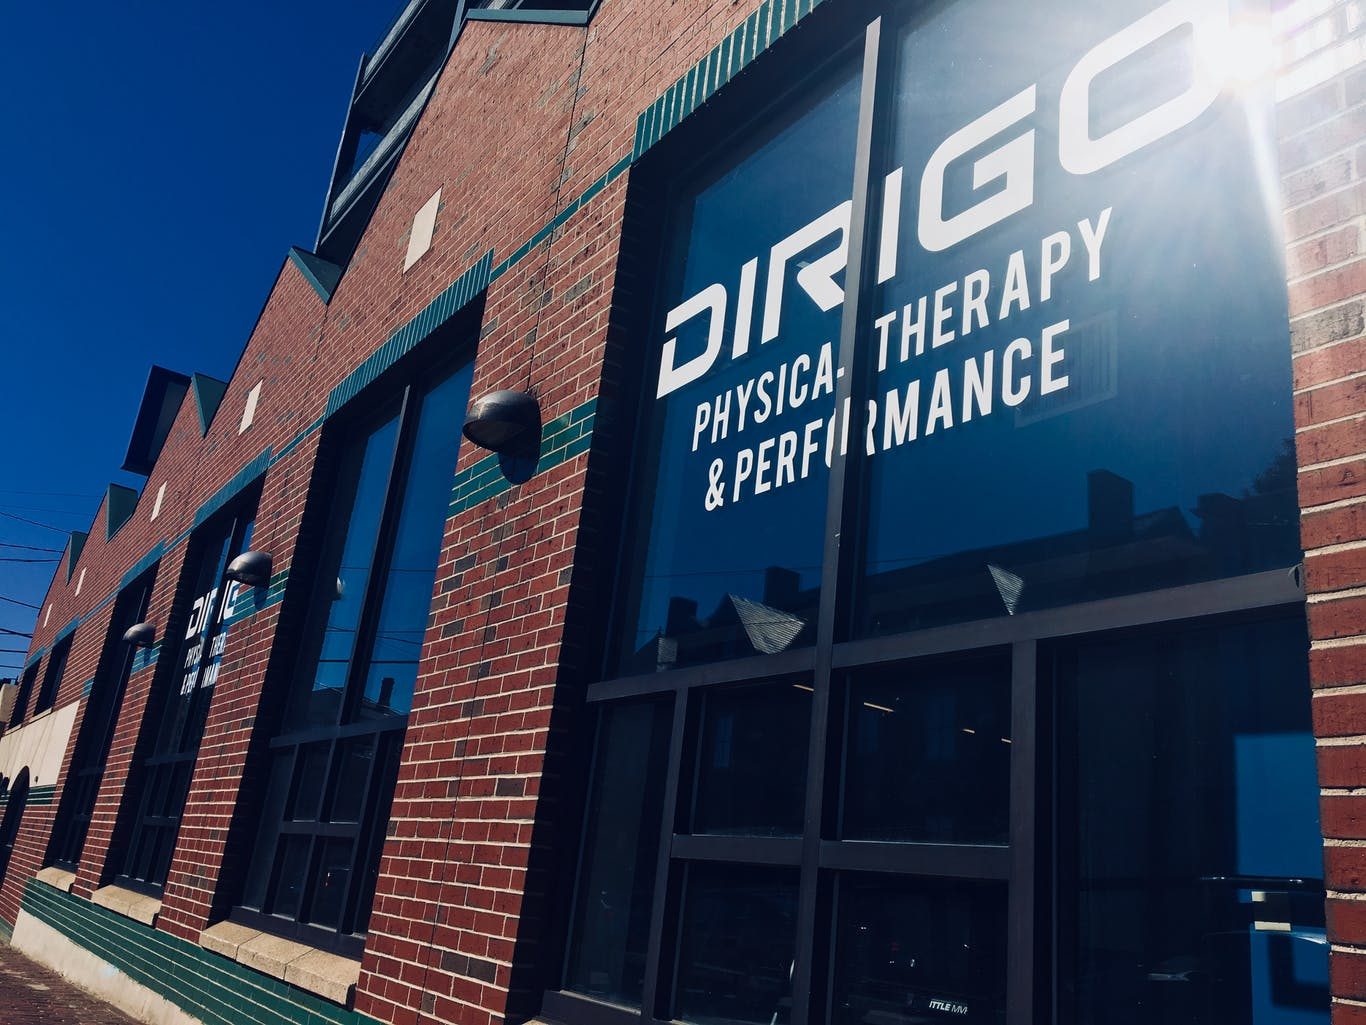 Dirigo Physical Therapy & Performance